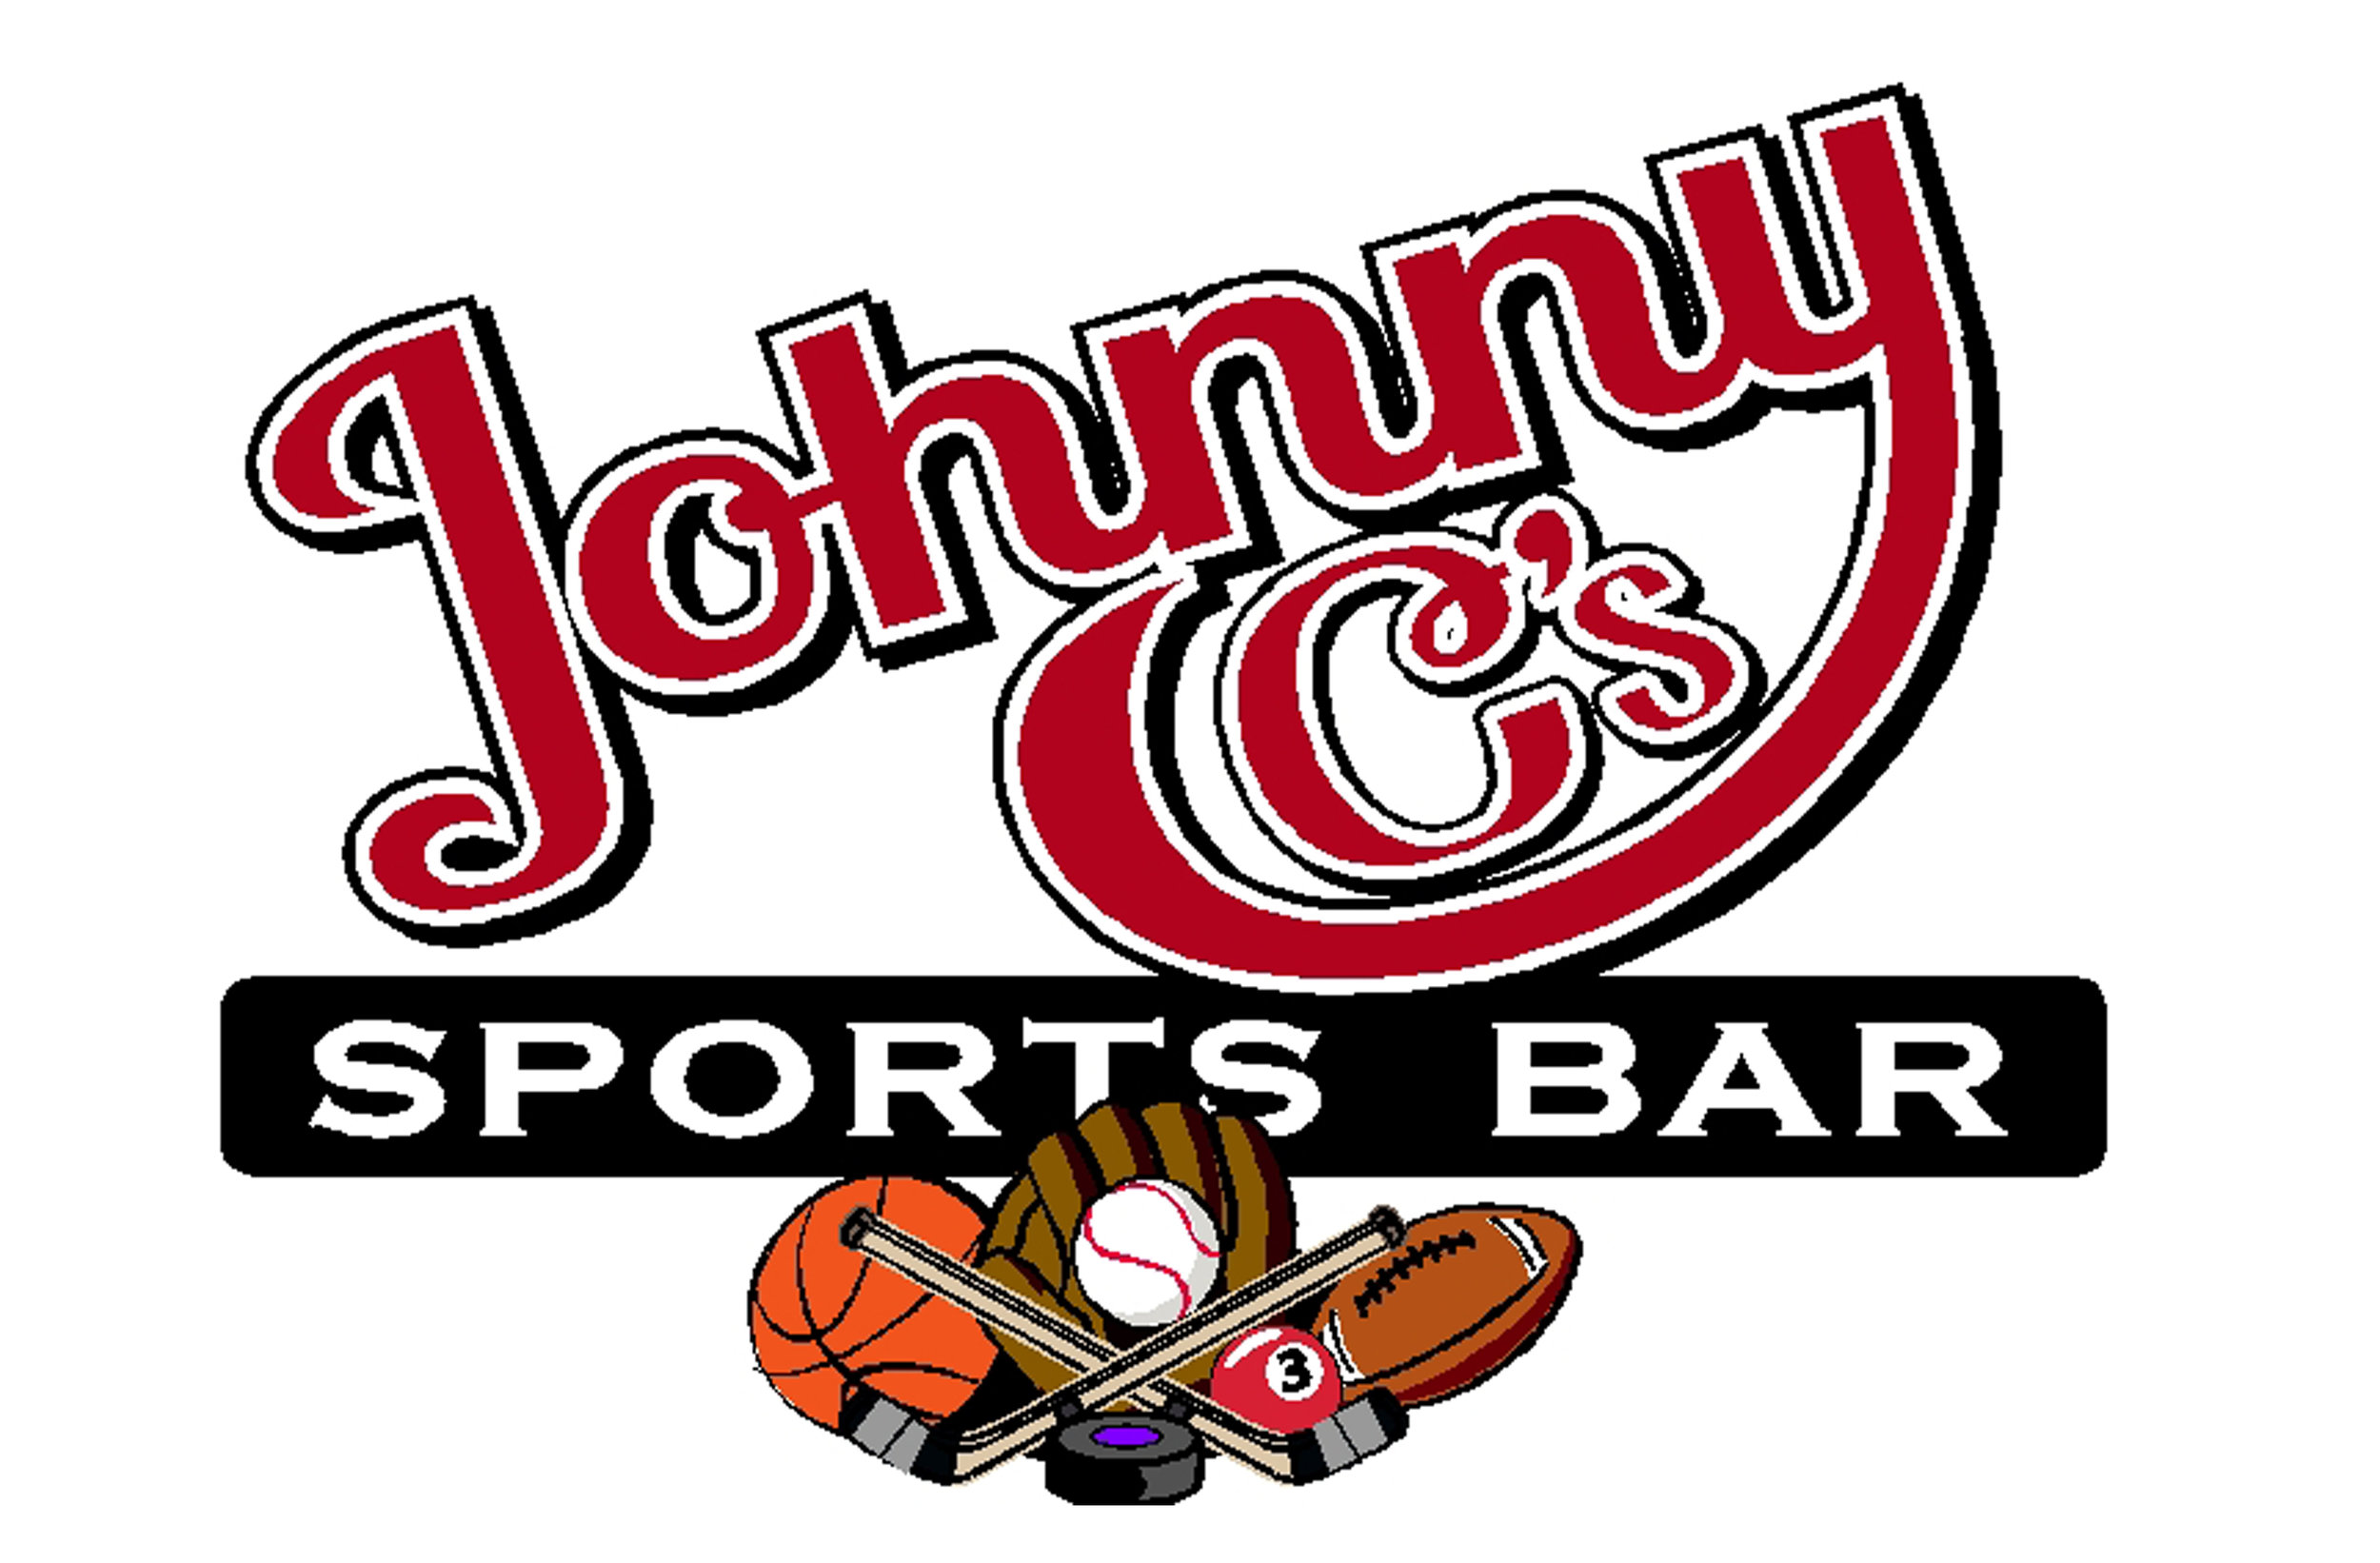 johnny c's logo.jpg